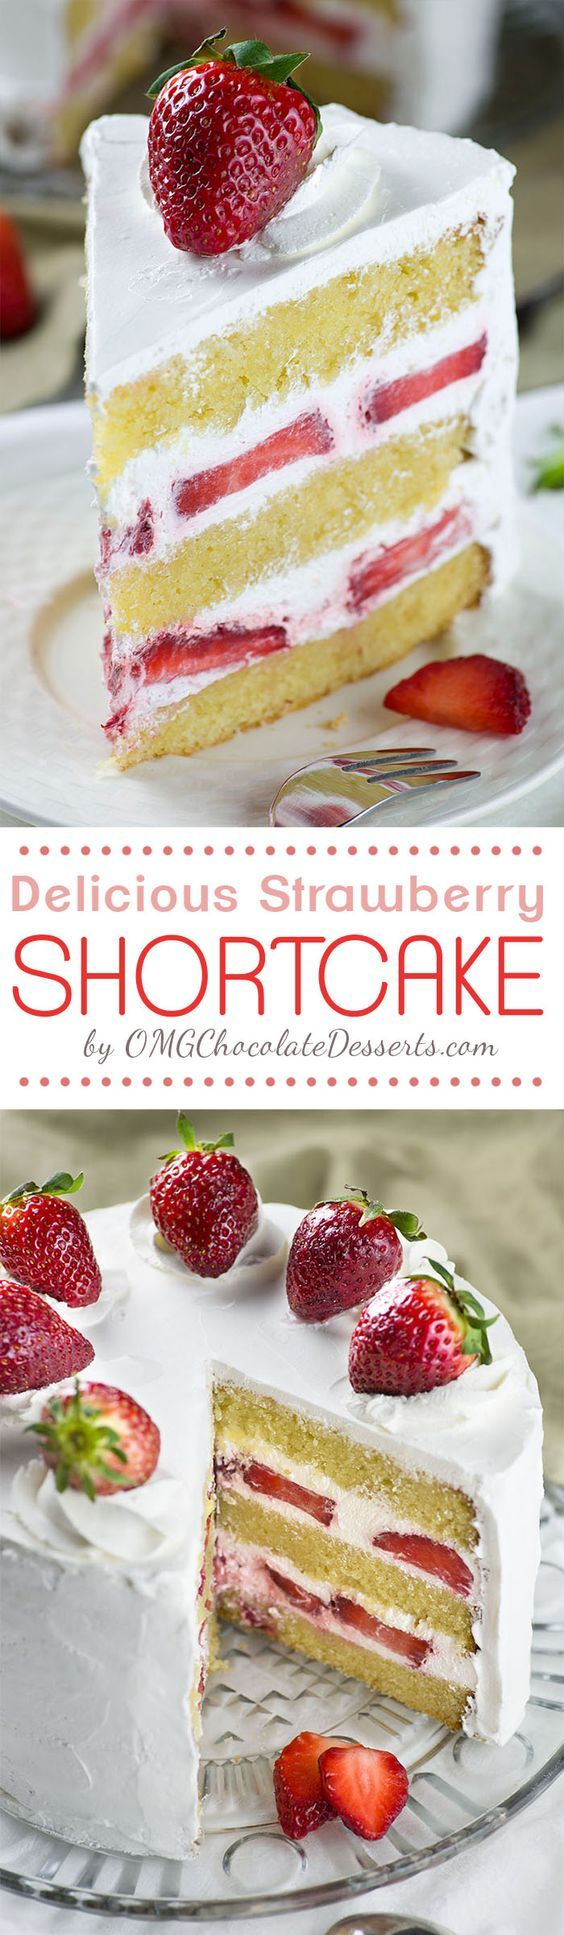 Strawberry Shortcake Cake - layers of dense buttery and moist vanilla cake filled with fresh whipped cream and fresh sliced strawberries. Easy spring ( or summer ) dessert recipe to celebrate the arrival of my favorite season.